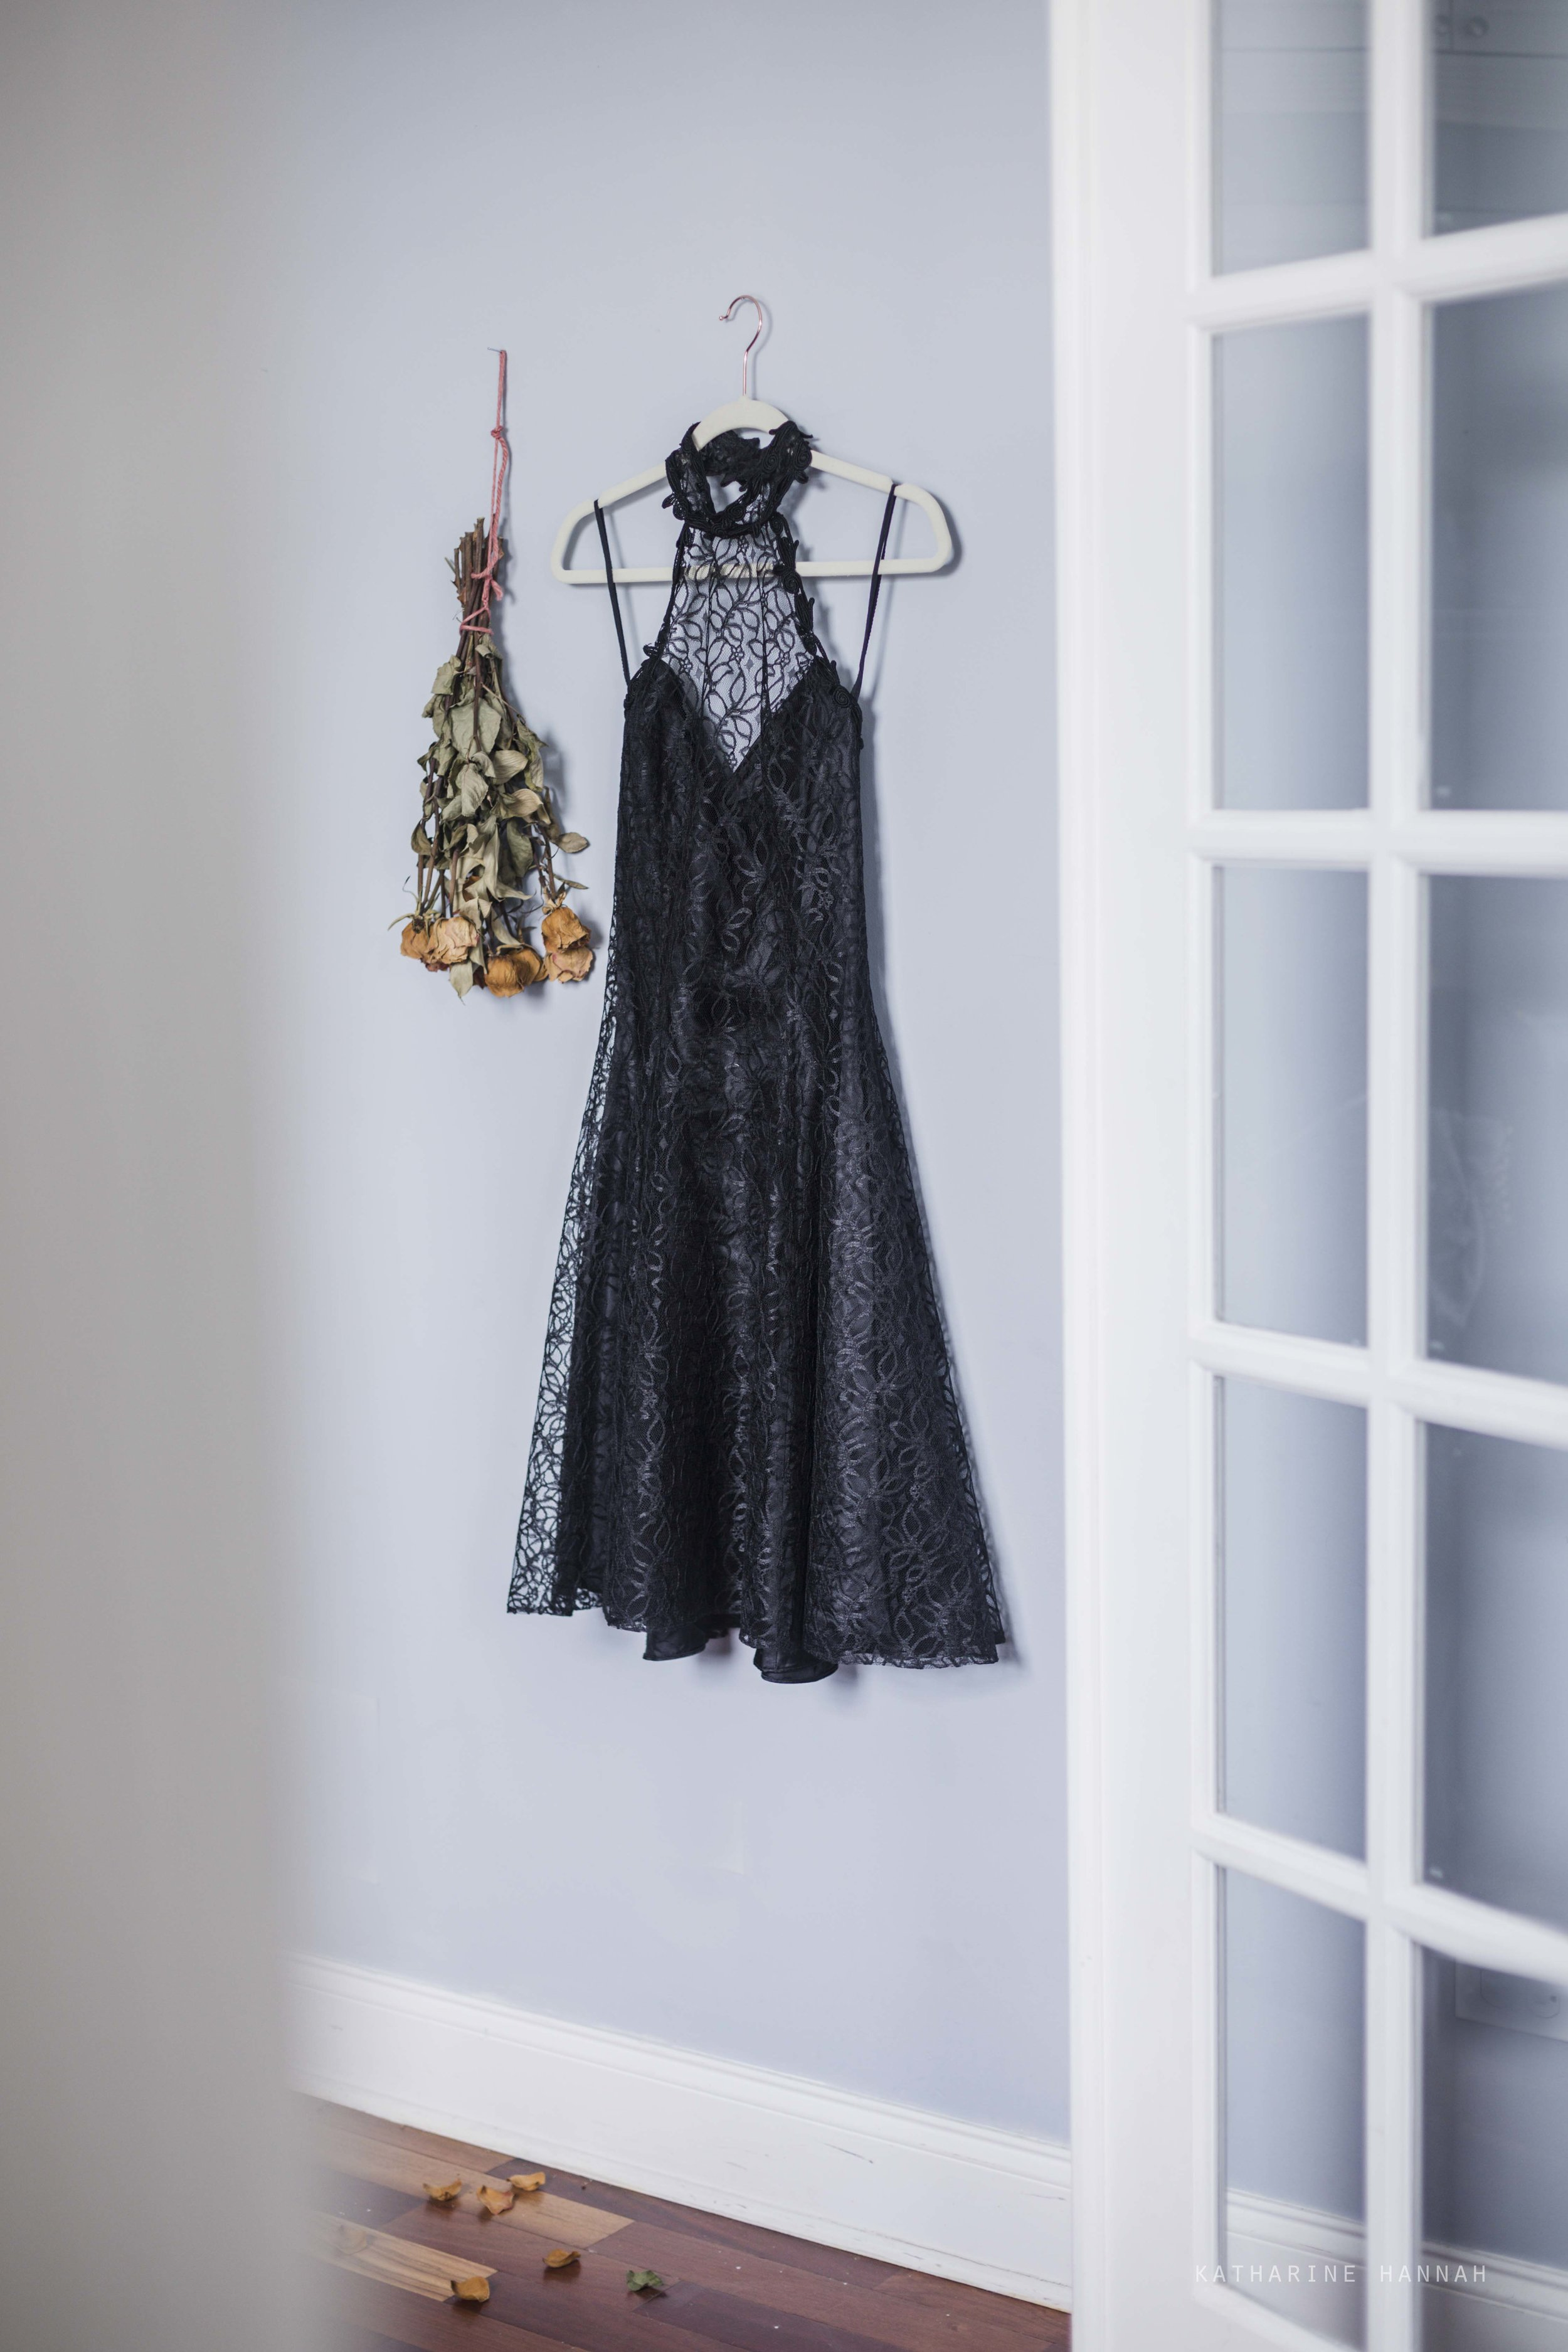 French glass doors in Chicago photo studio with black lace dress